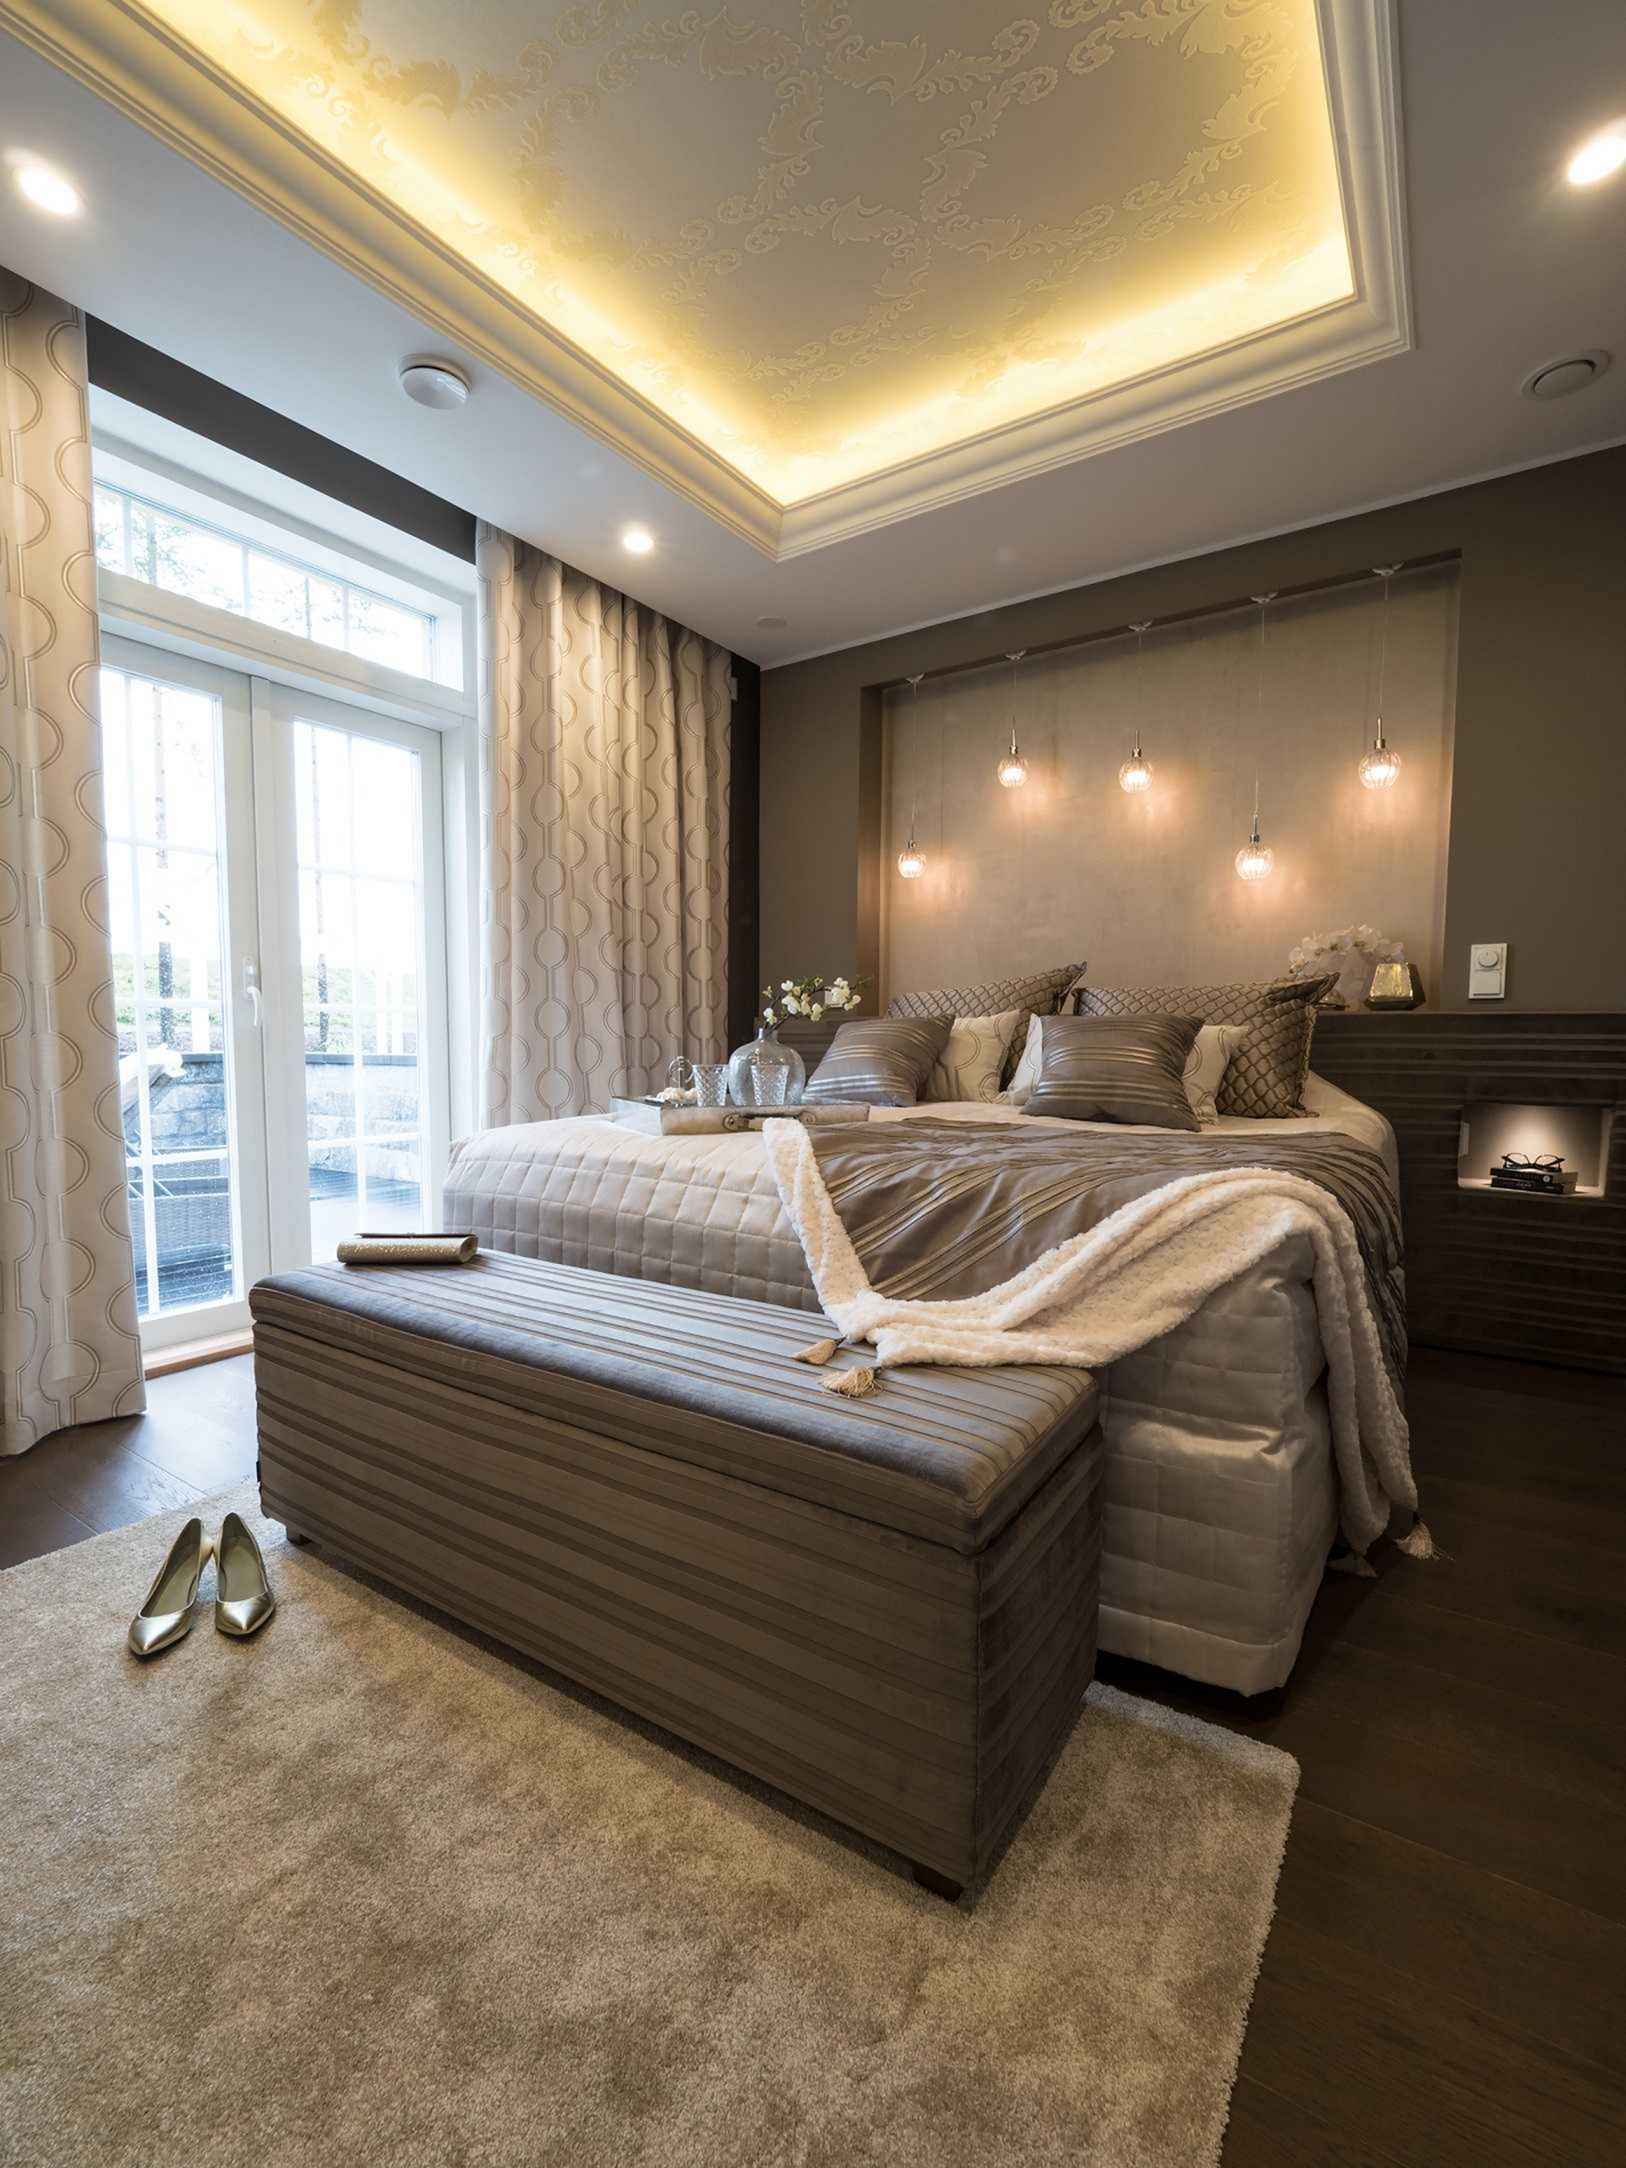 Find Out The Best Bedroom Lighting Selection For Your Next Interior Design Project Ceiling Design Bedroom Master Bedroom Ceiling Ideas Master Bedroom Lighting